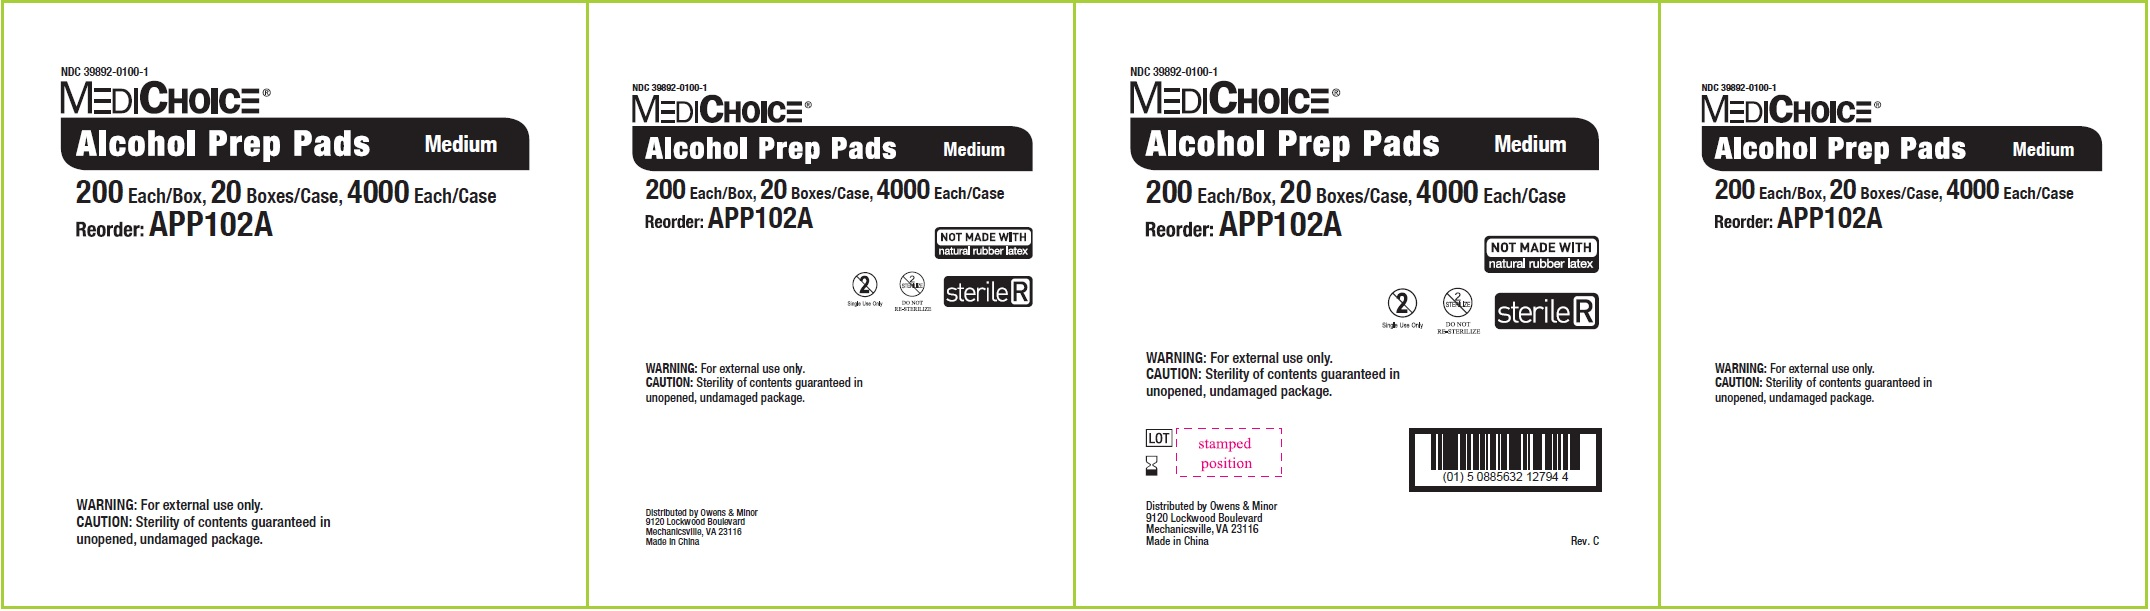 NDC - 39892-0100-1 - Alcohol Prep Pad - Box1